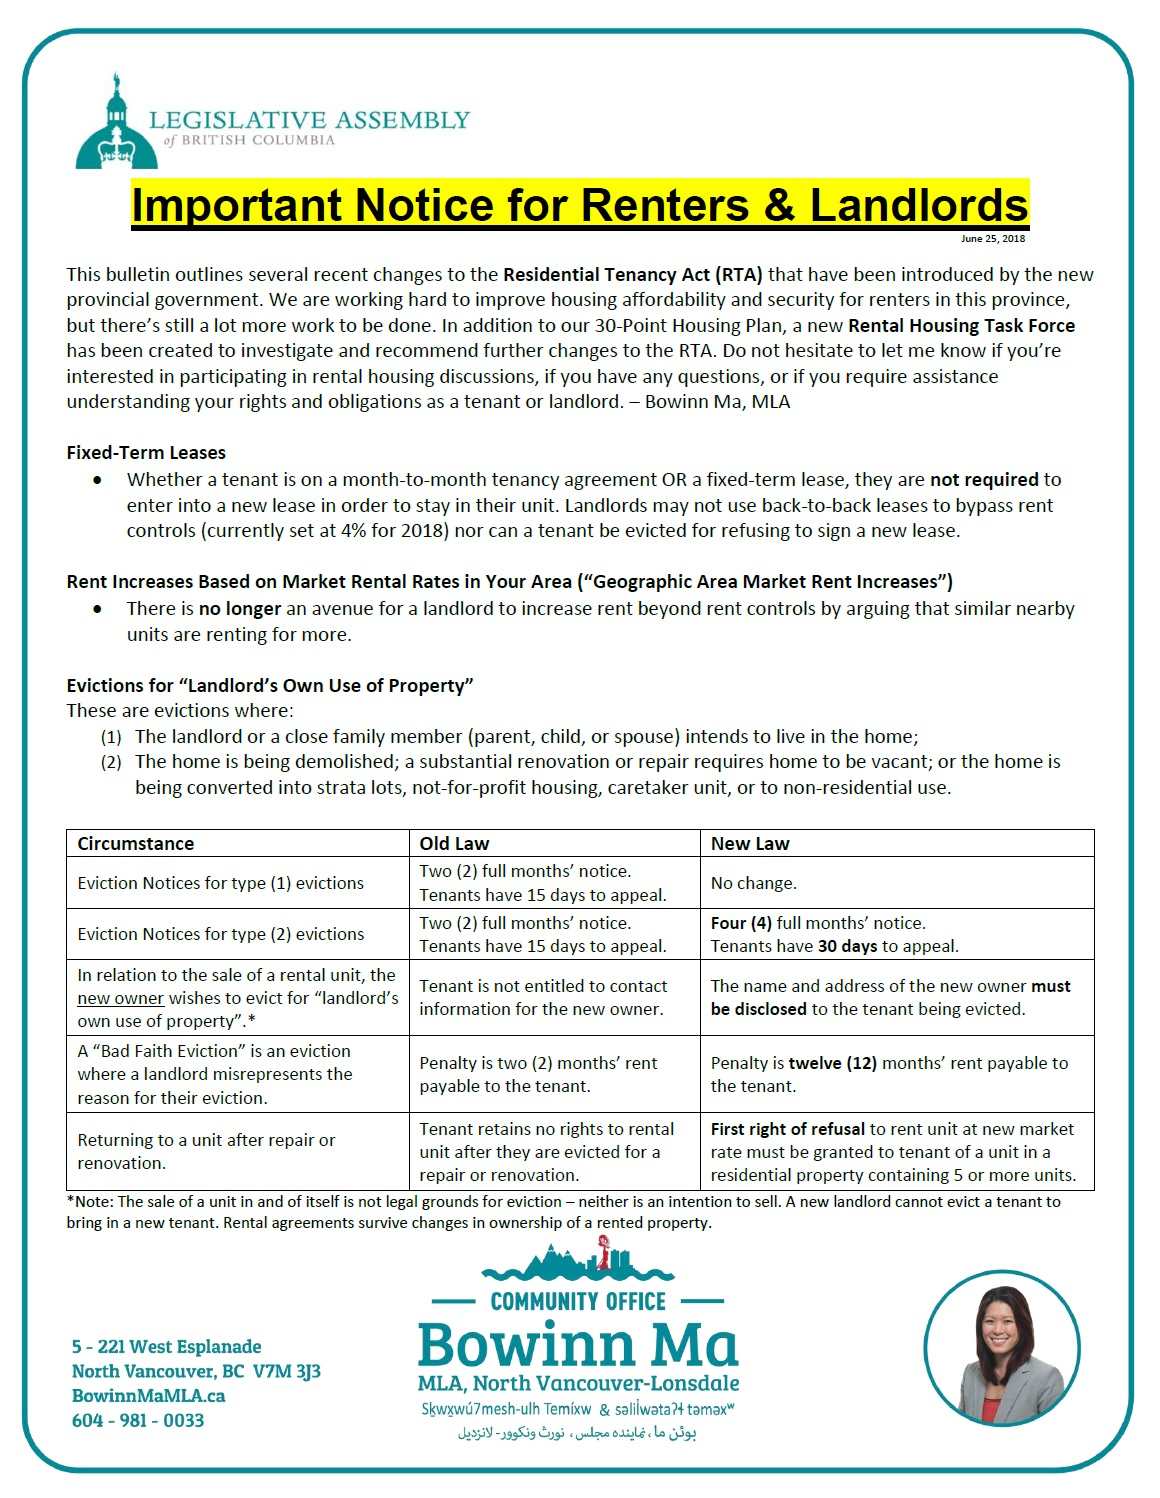 Tenancy Changes Important Notice For Renters Landlords Bowinn